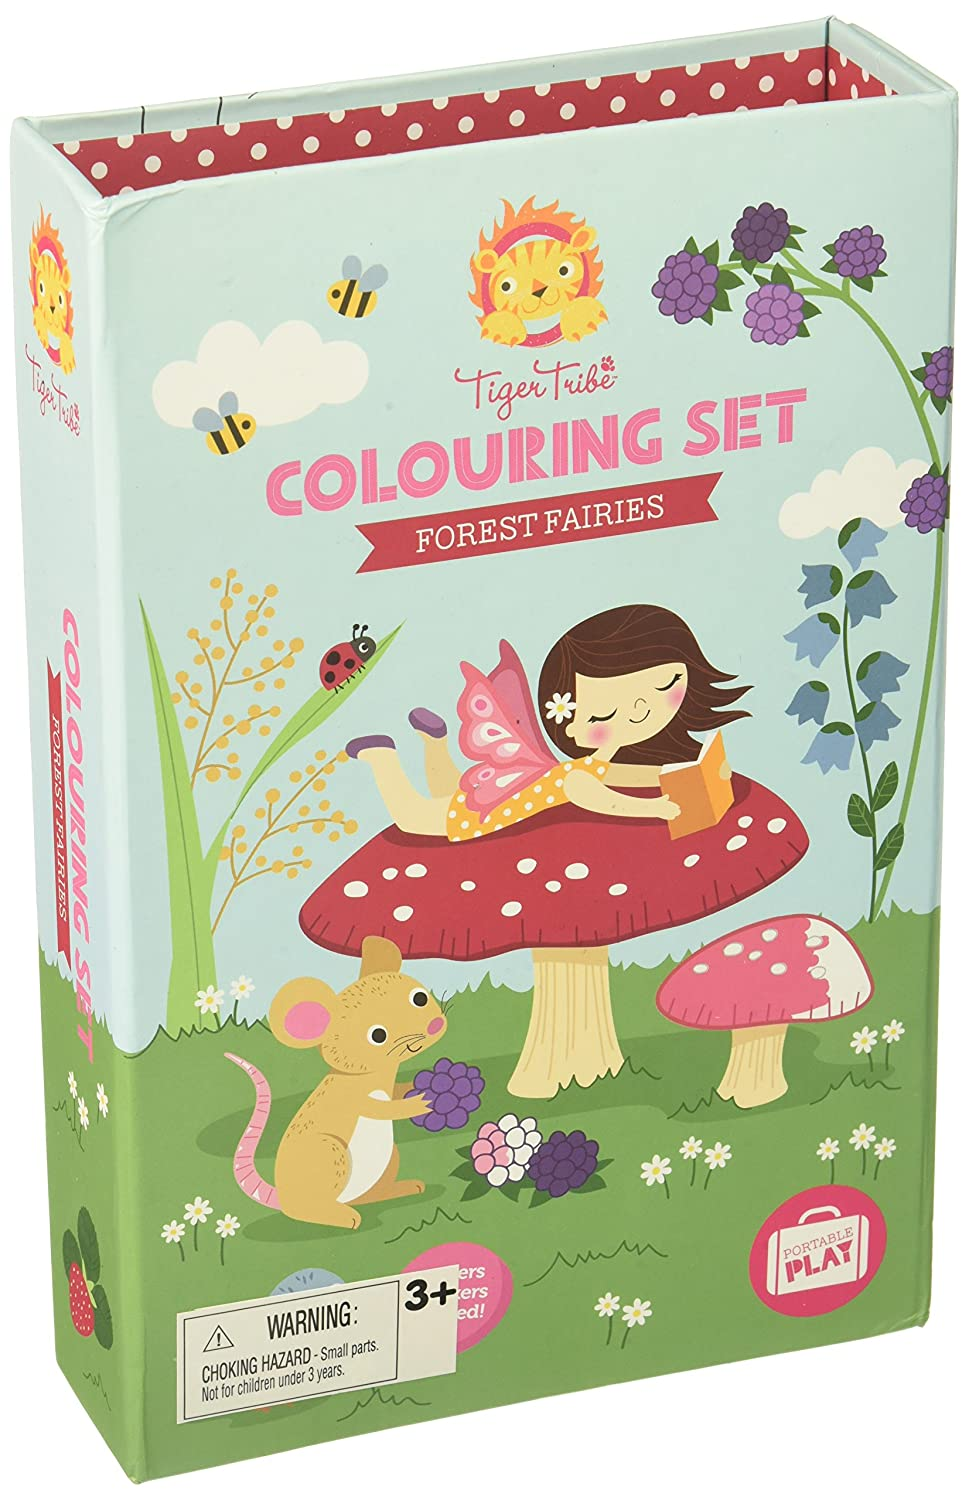 Tiger Tribe Coloring Set, Forest Fairies Arts and Crafts Kit 60215